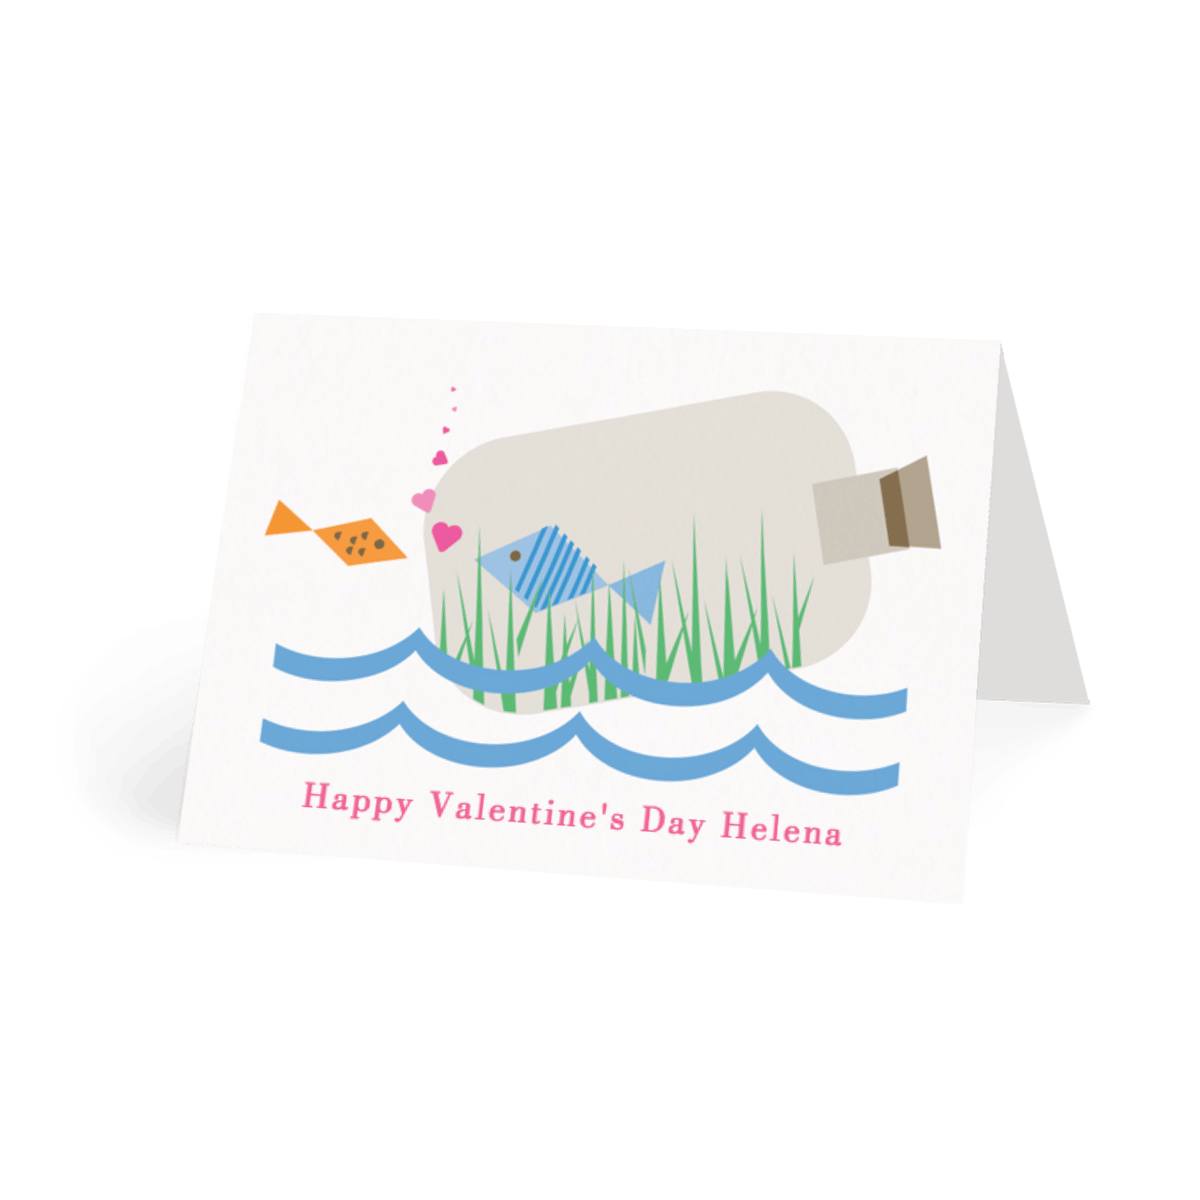 Https%3a%2f%2fwww.papier.com%2fproduct image%2f4026%2f14%2flove in a bottle 1068 front 1453911102.png?ixlib=rb 1.1